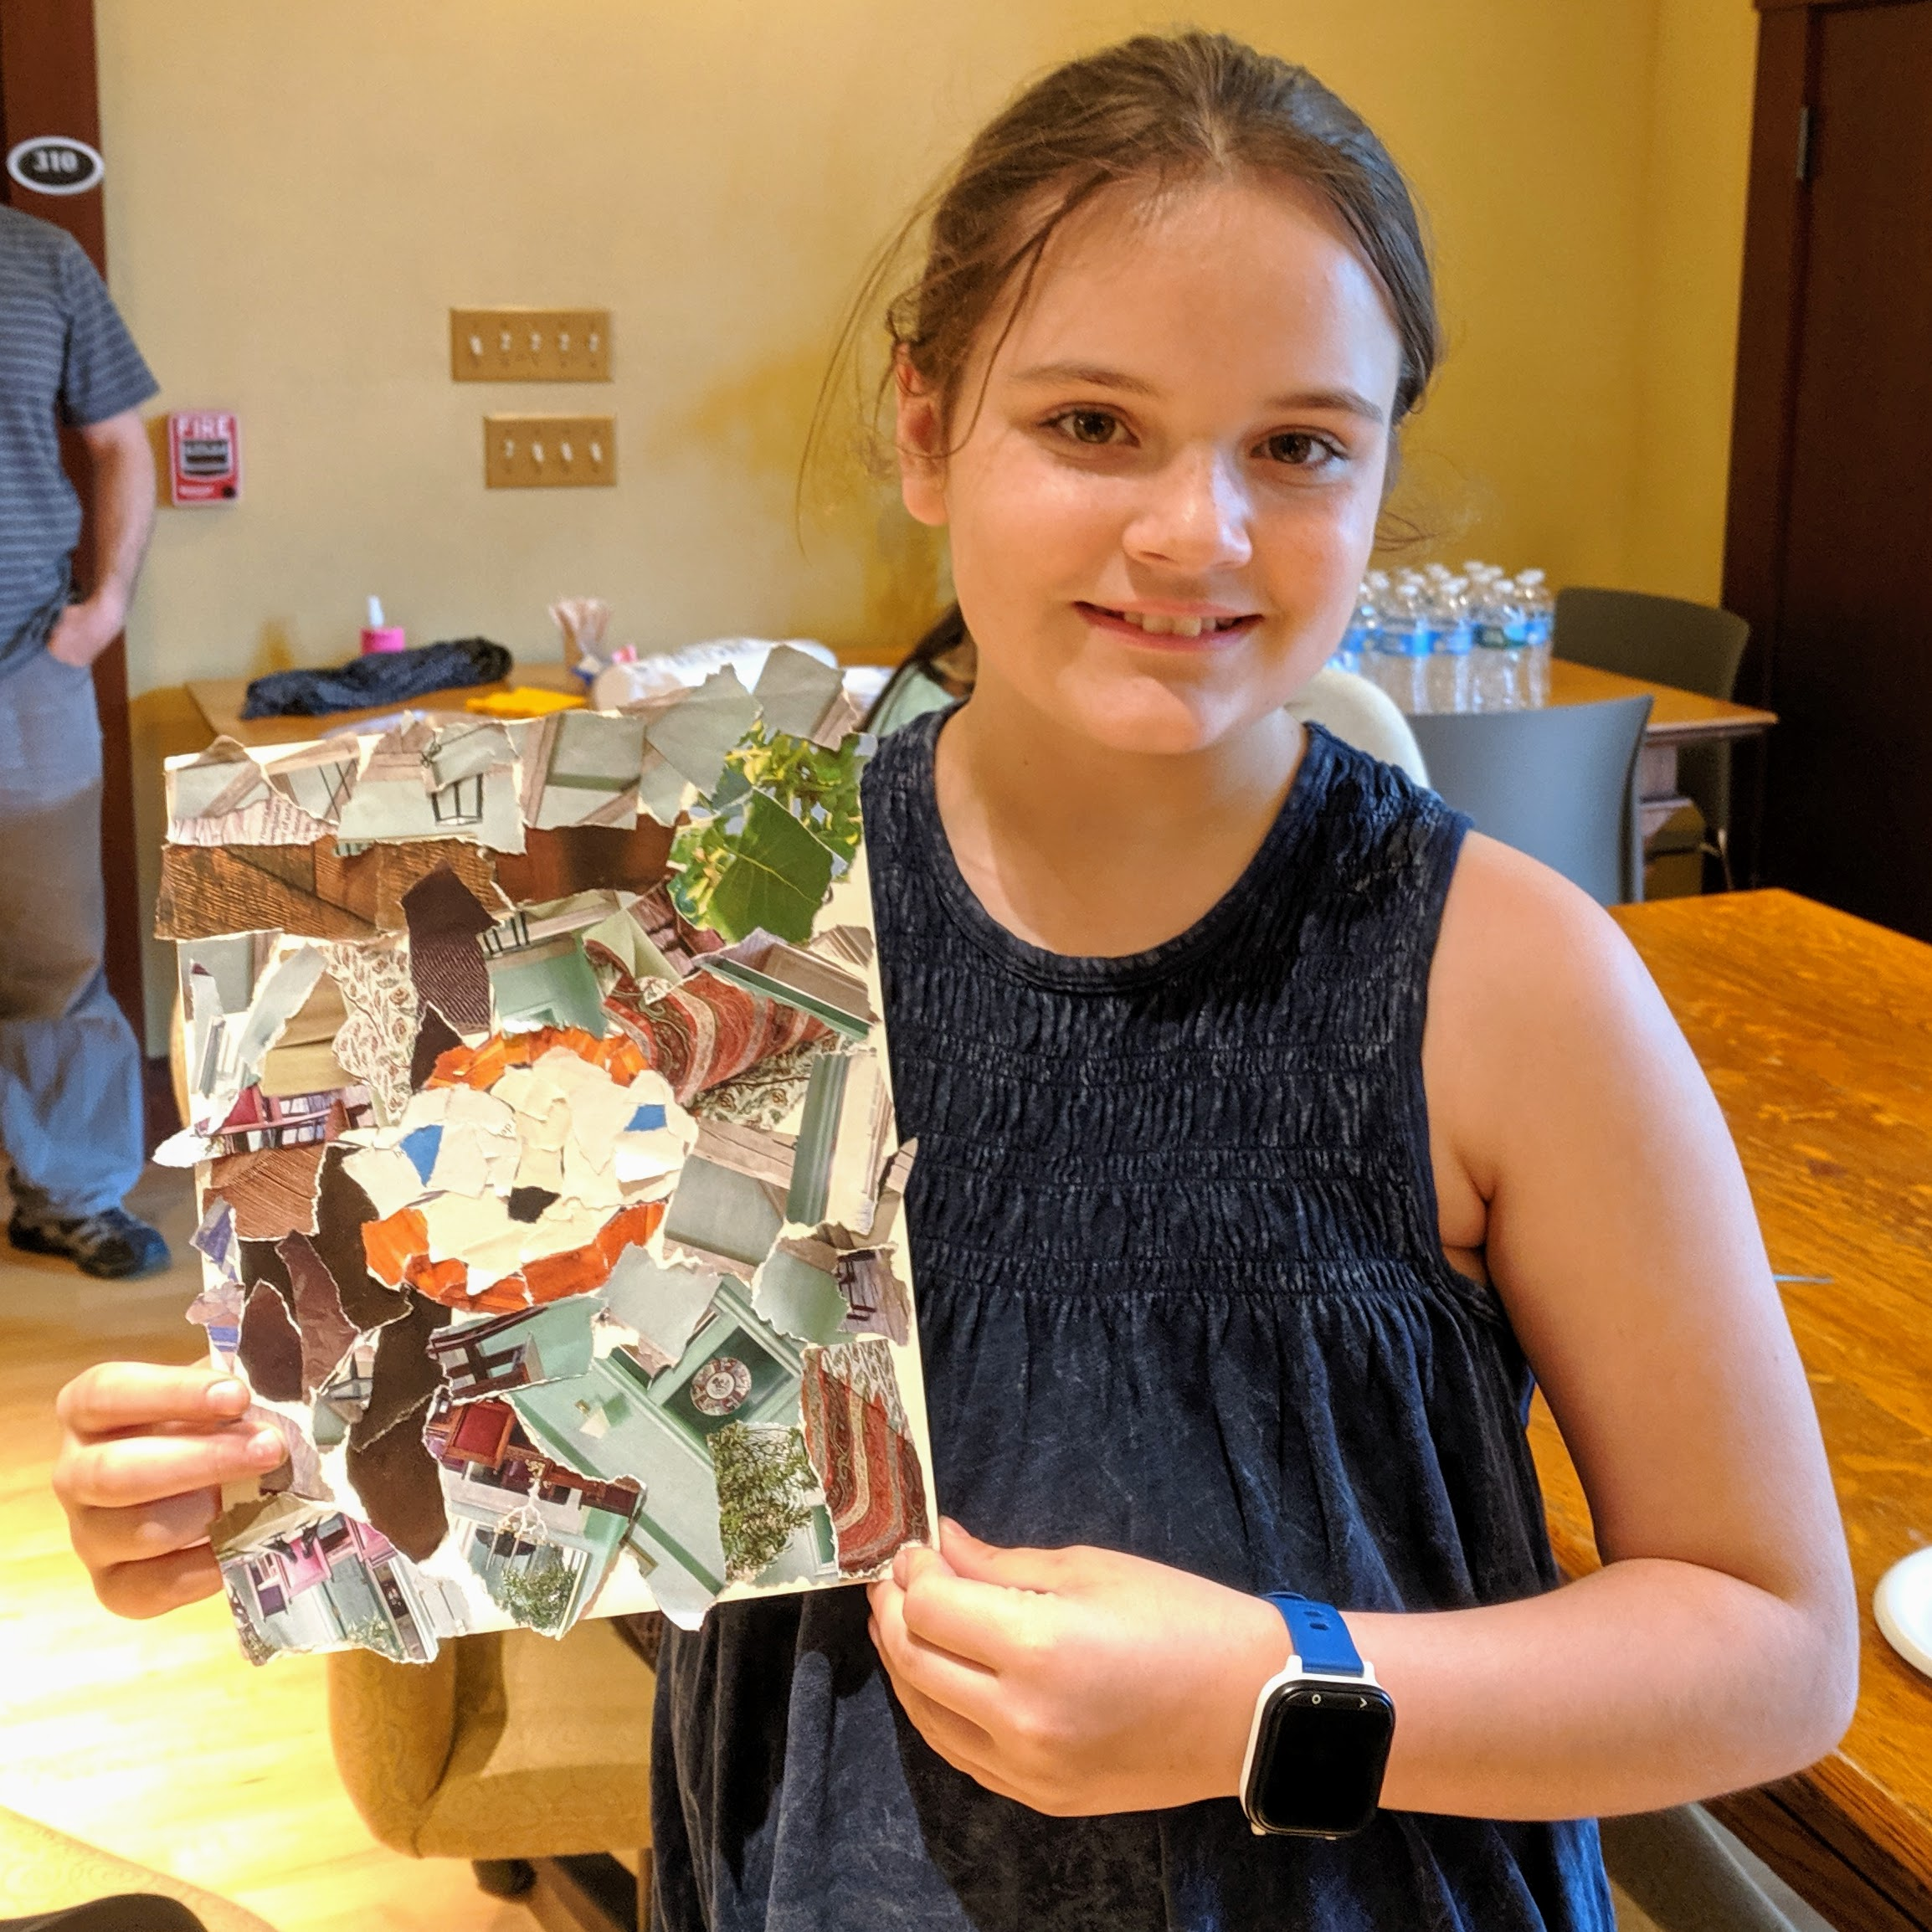 returned with her completed work to show Juni_20190517_164303.jpg